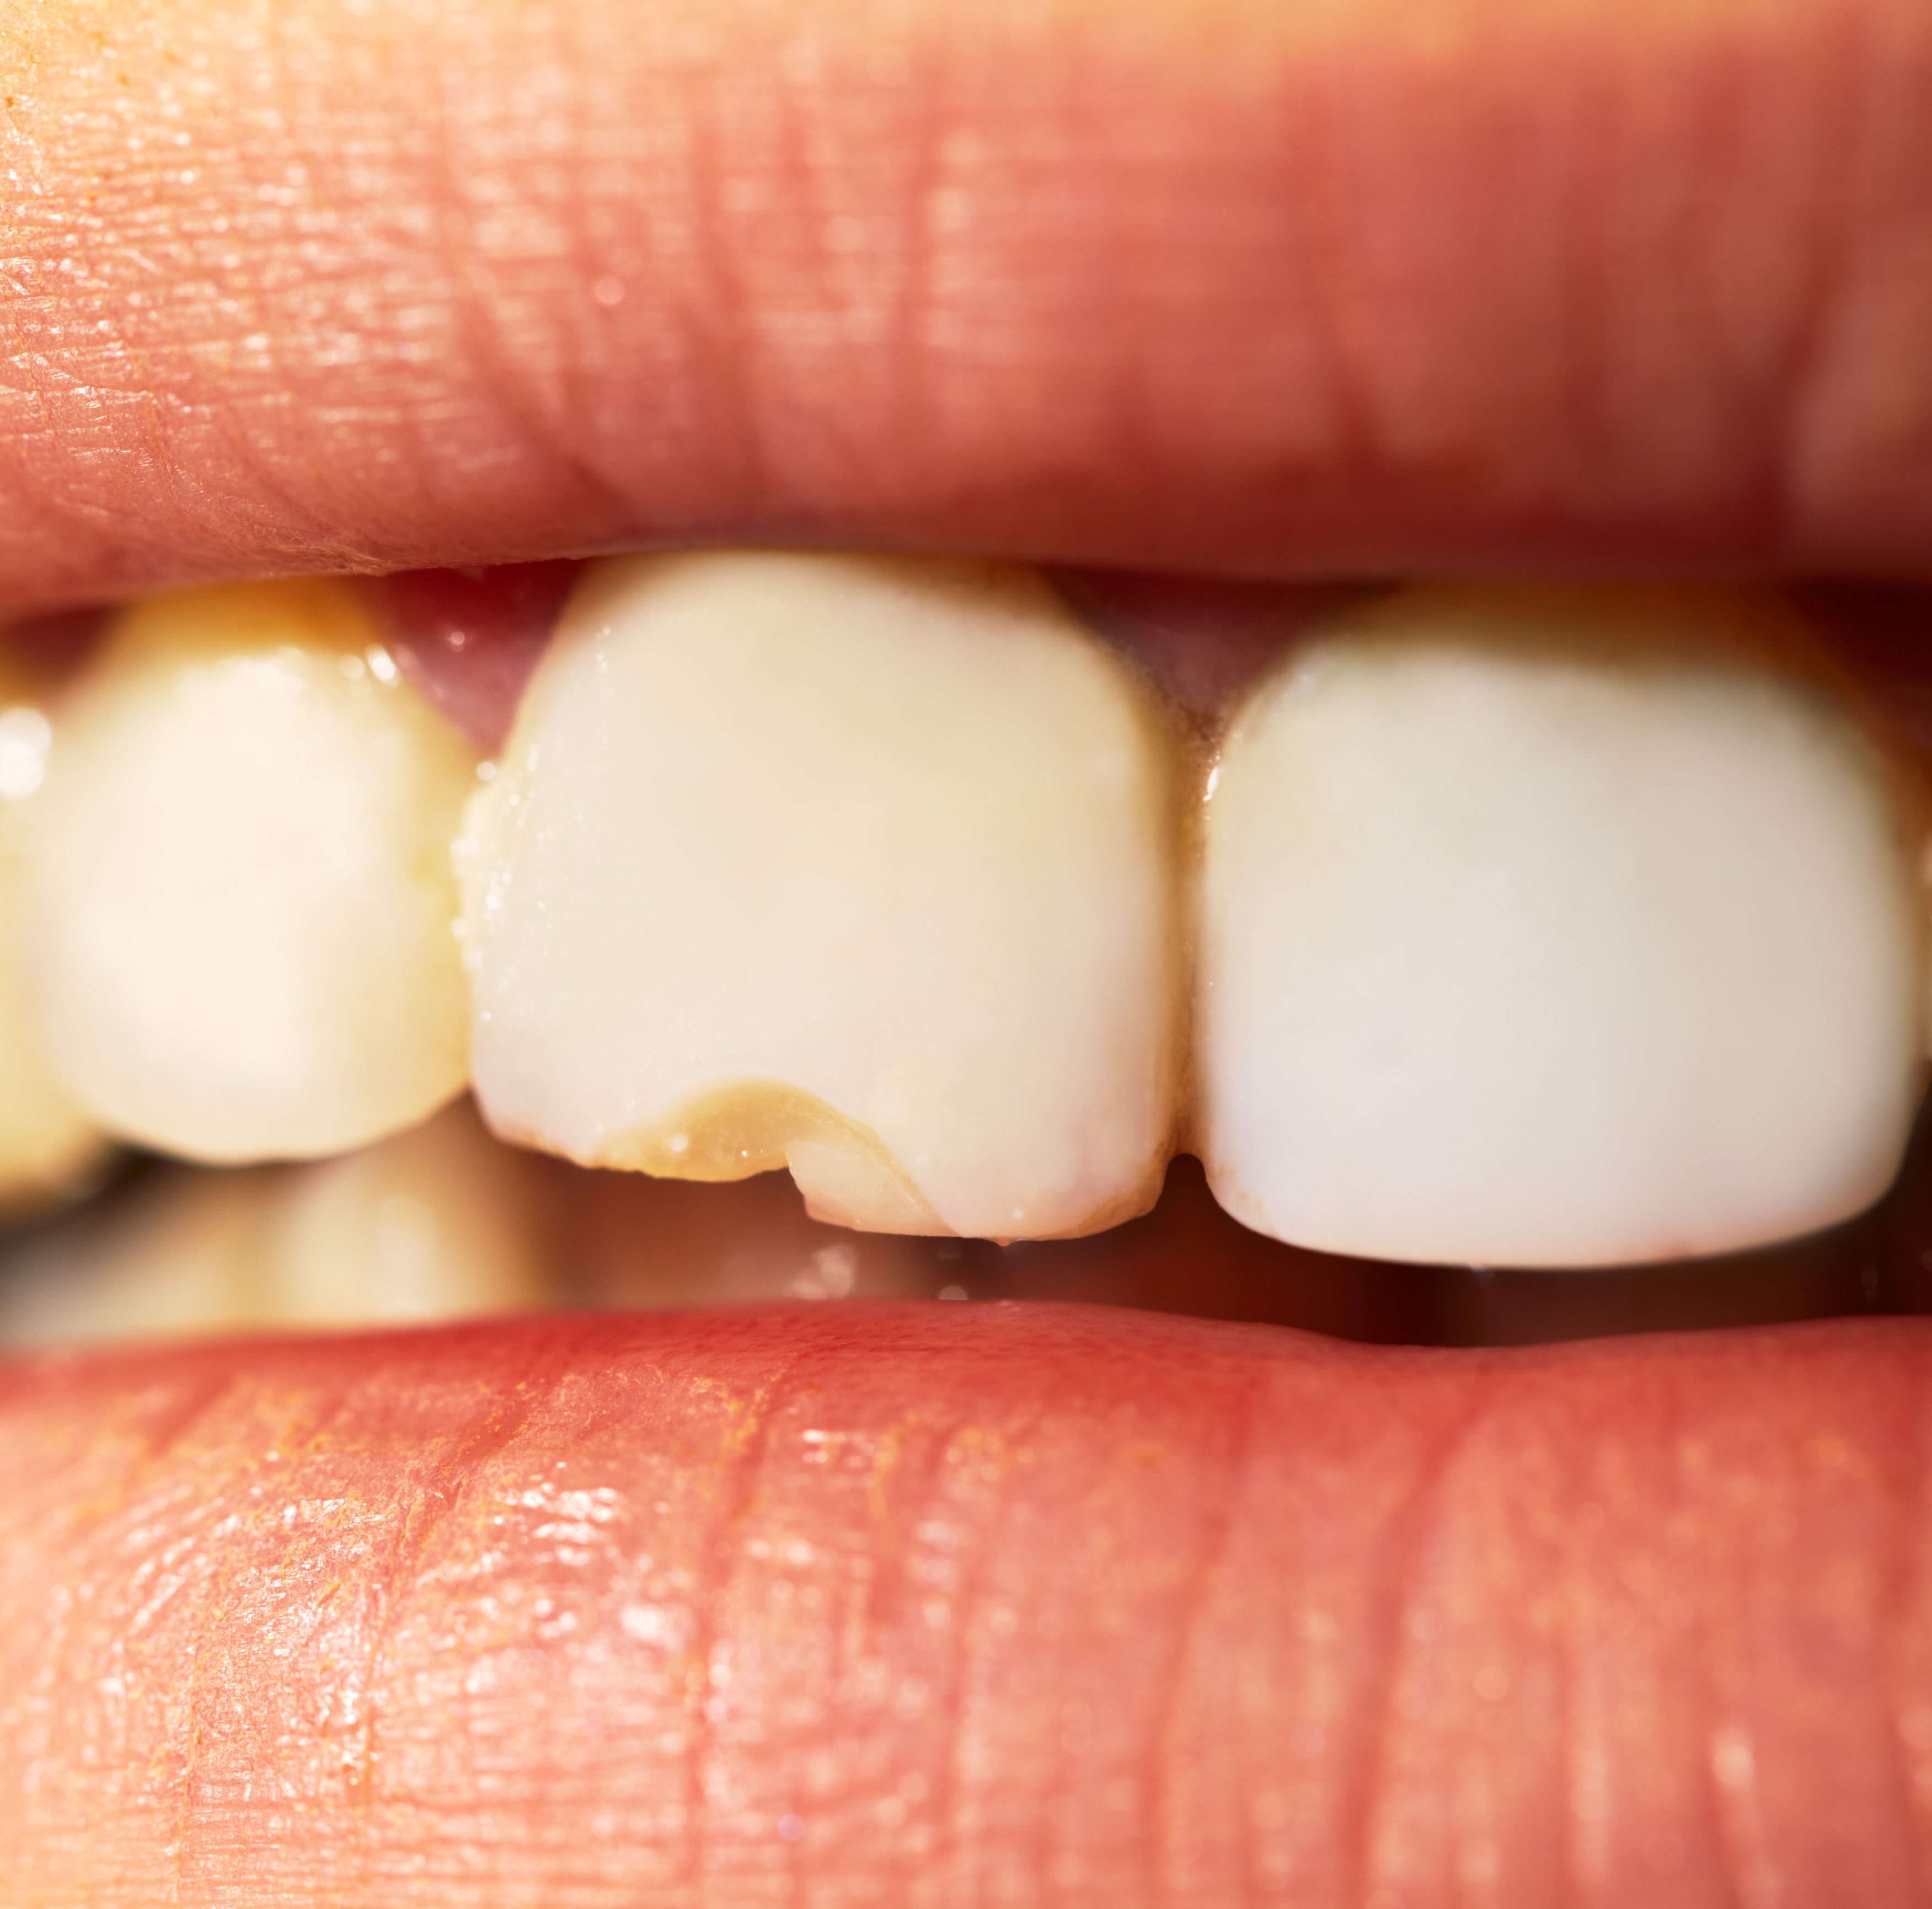 yellowing teeth are a sign of teeth stains